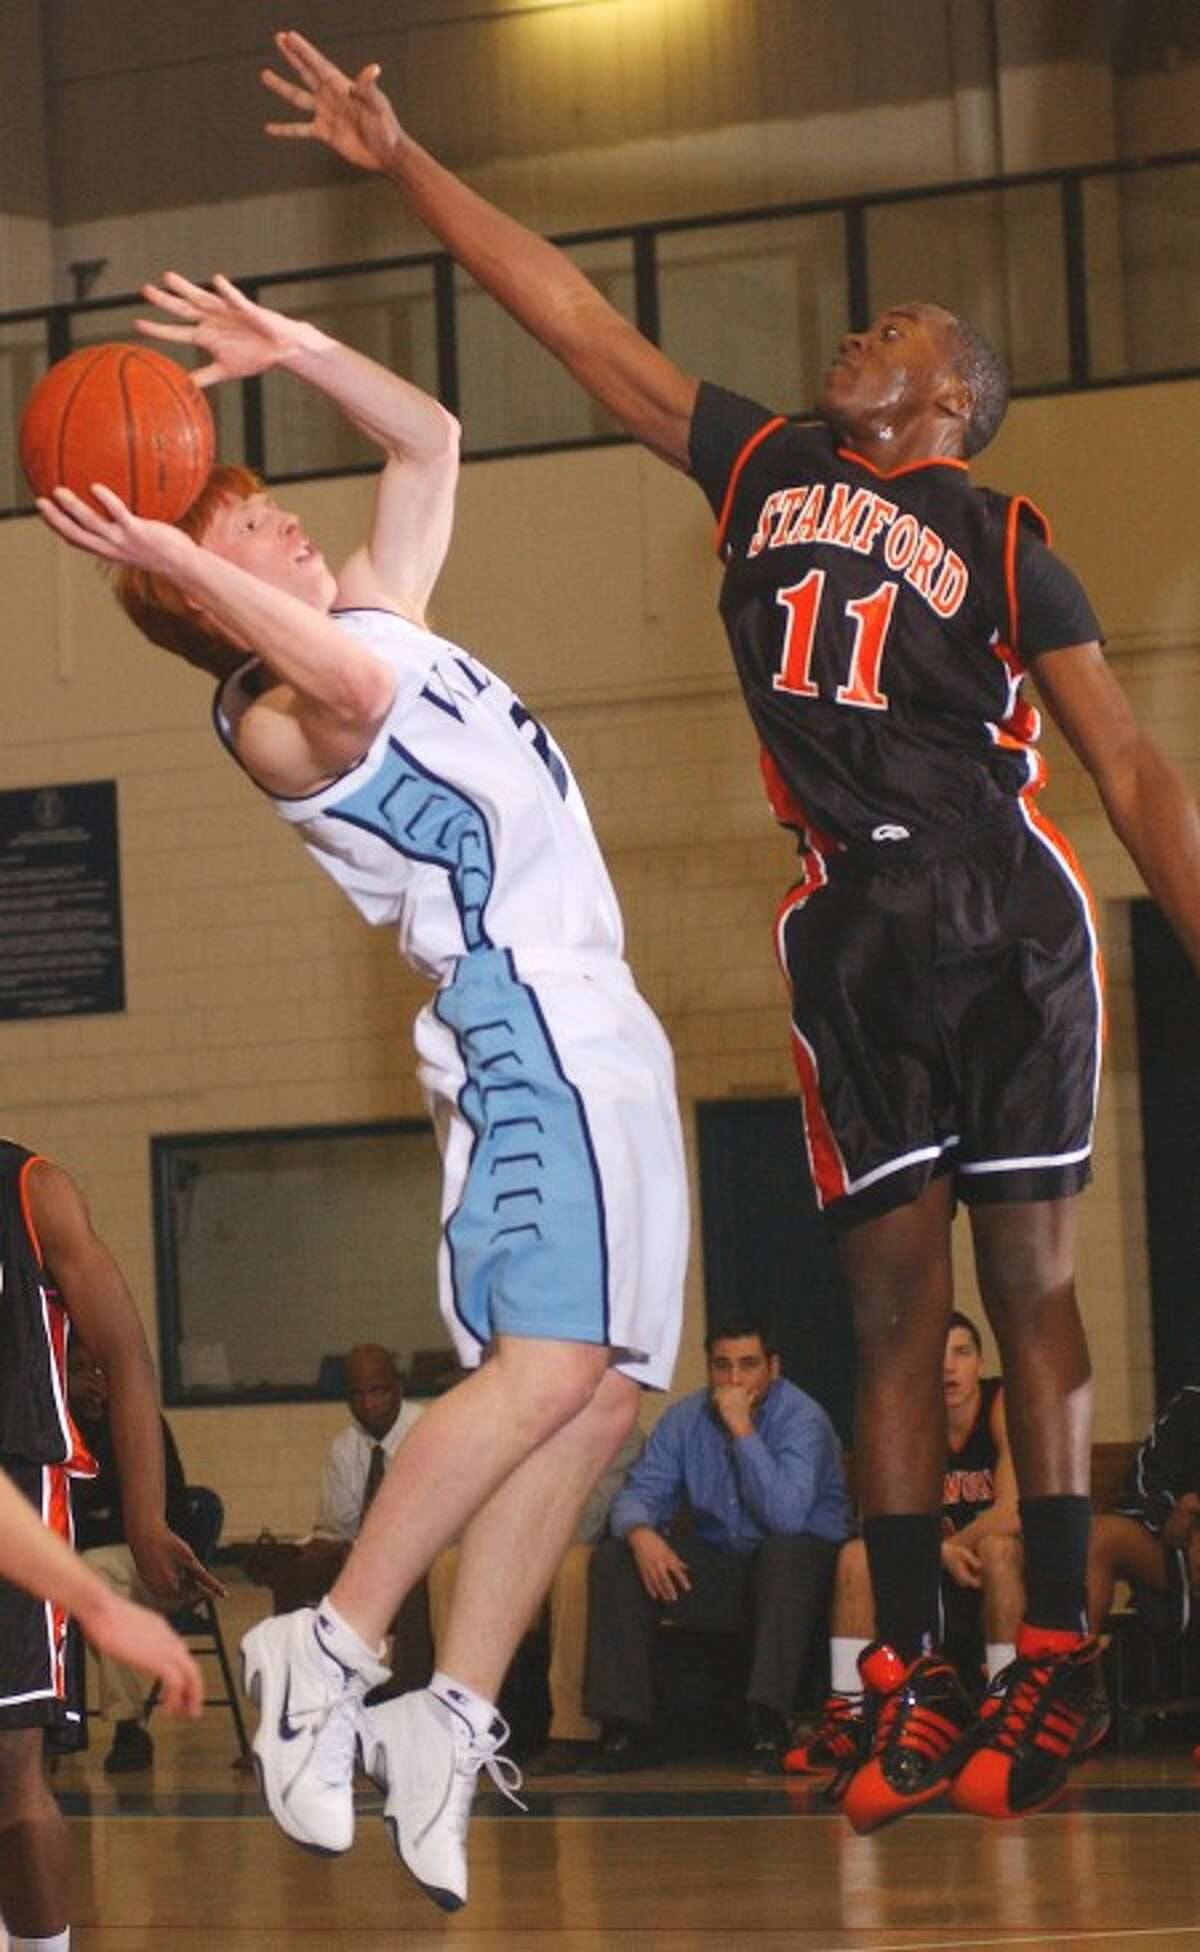 Photo by John Nash - Stamford''s Chris Evans, right, changes the shot of Wilton''s Jared Wyman.